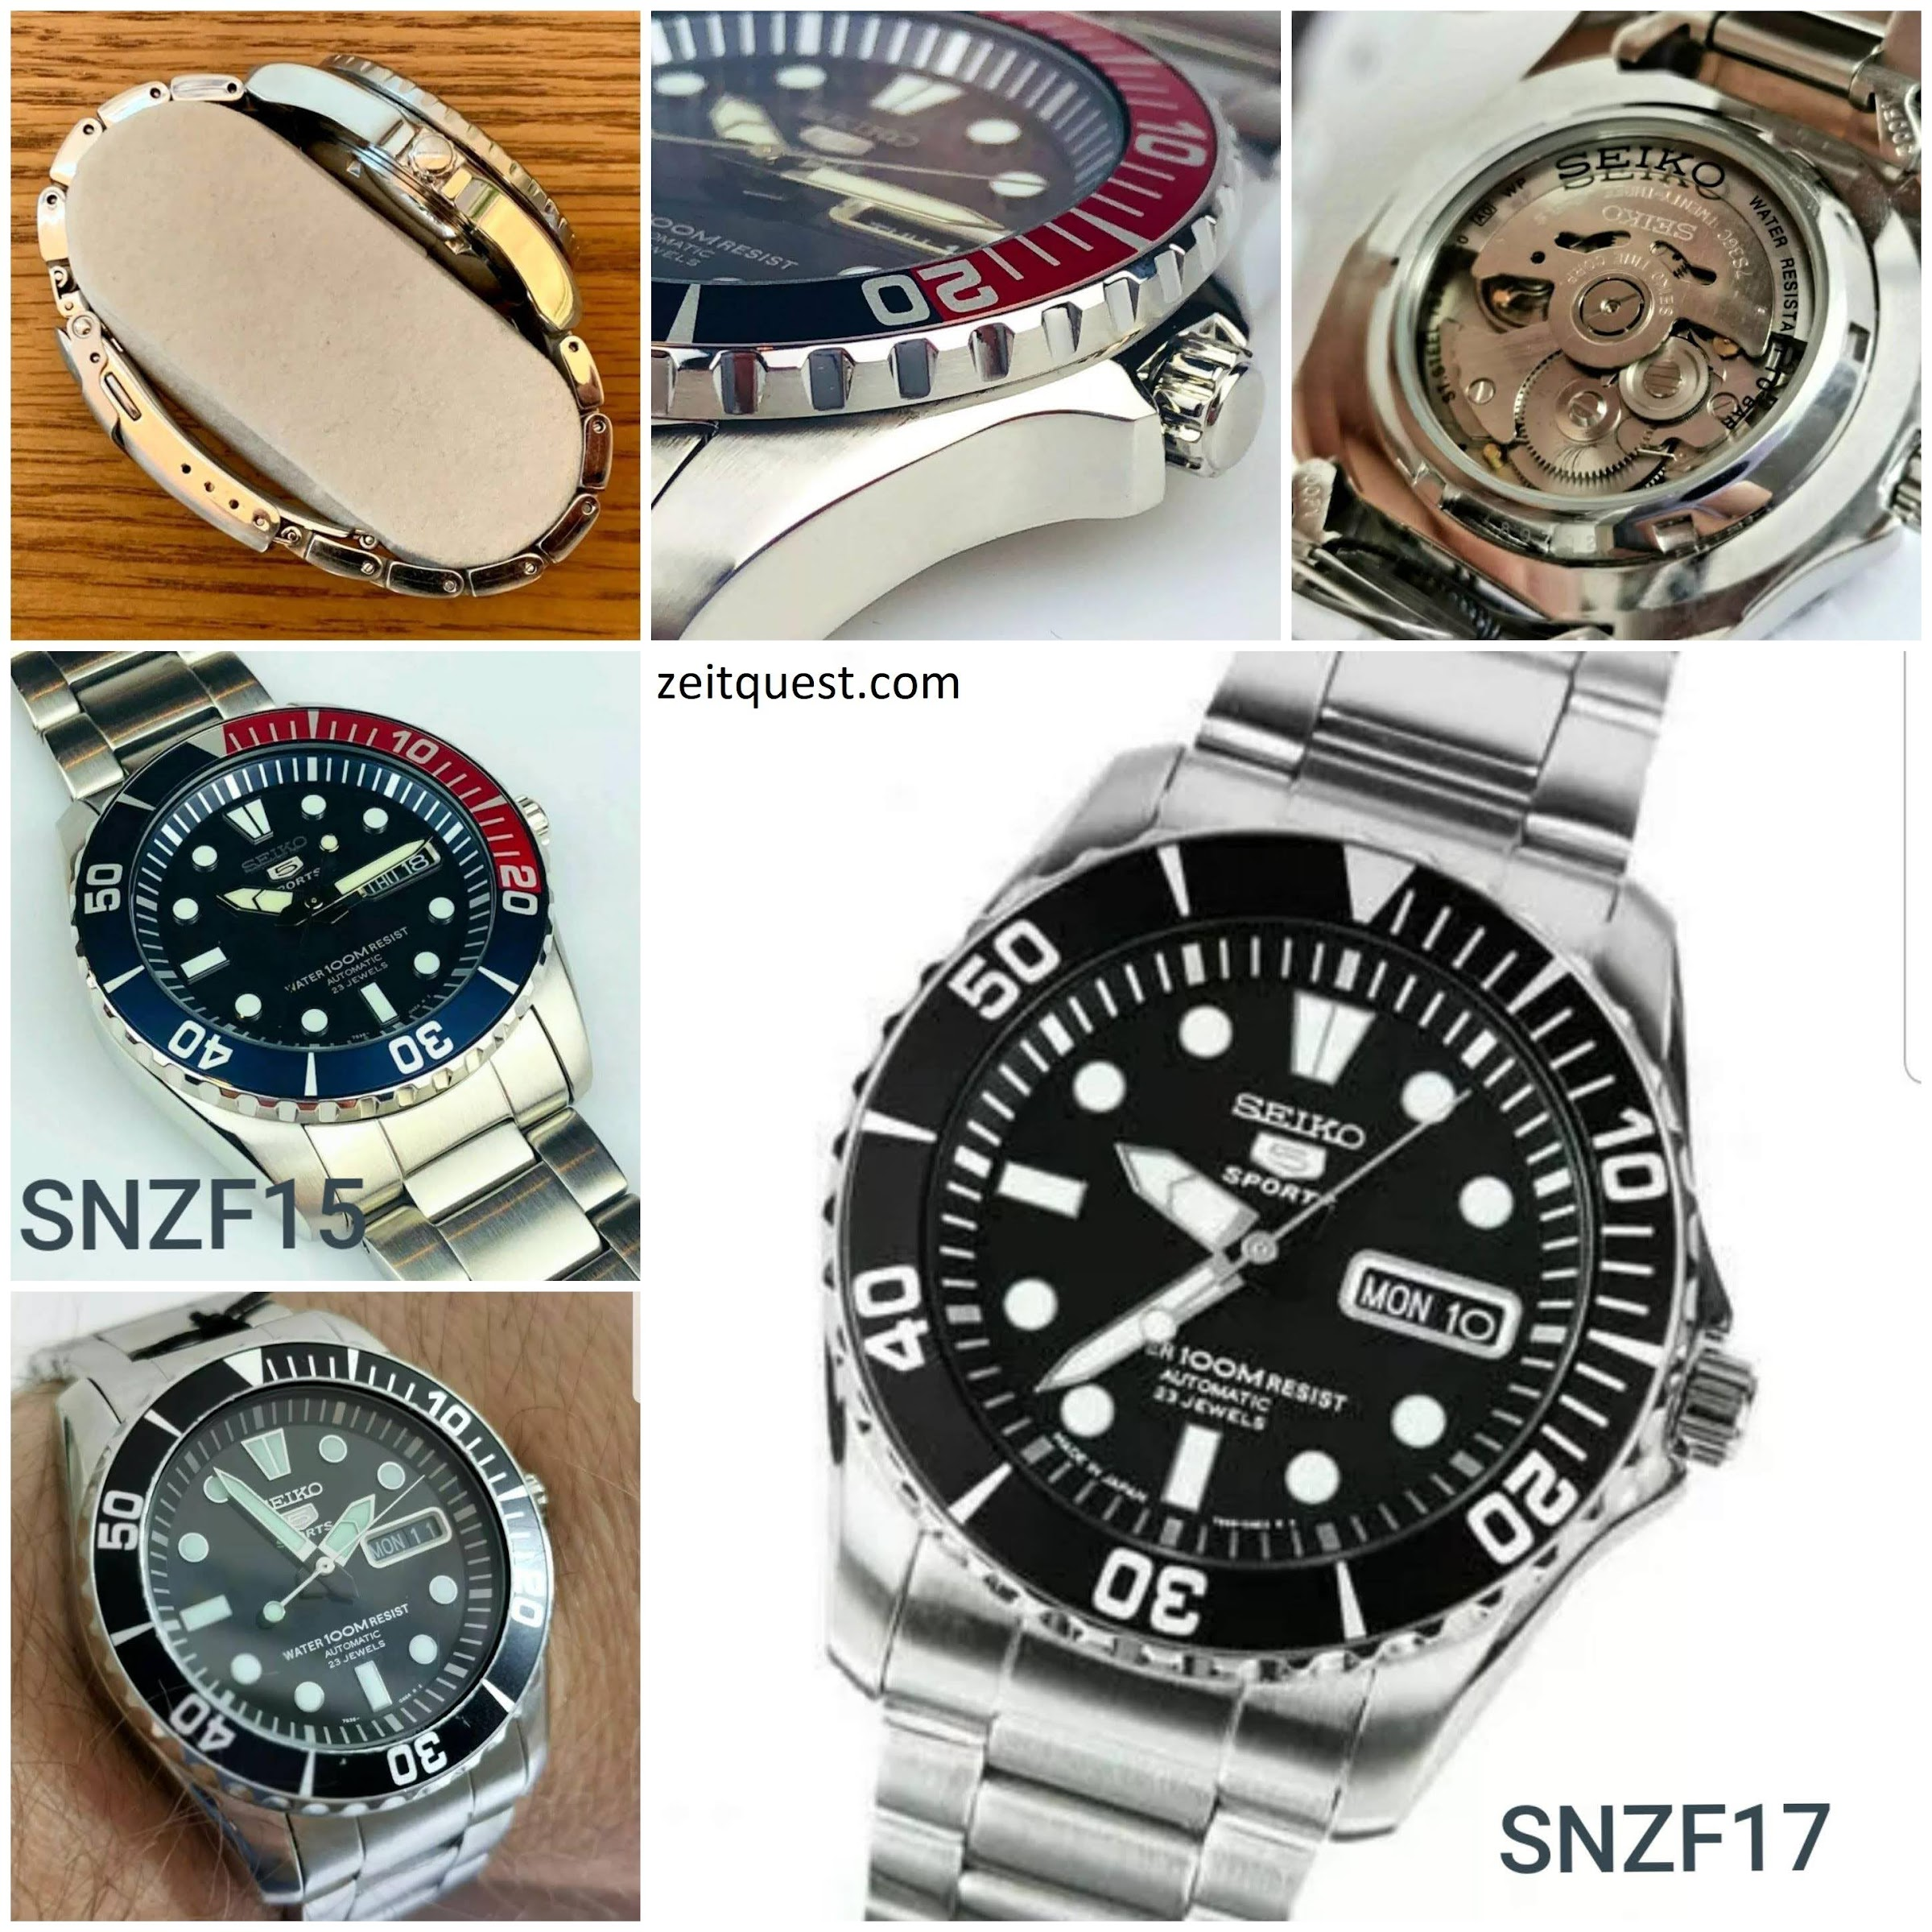 The Seiko 5 SNZF17 and SNZF15 can be seen as a very affordable diving watch with a similar style to the Rolex Submariner. Available on eBay